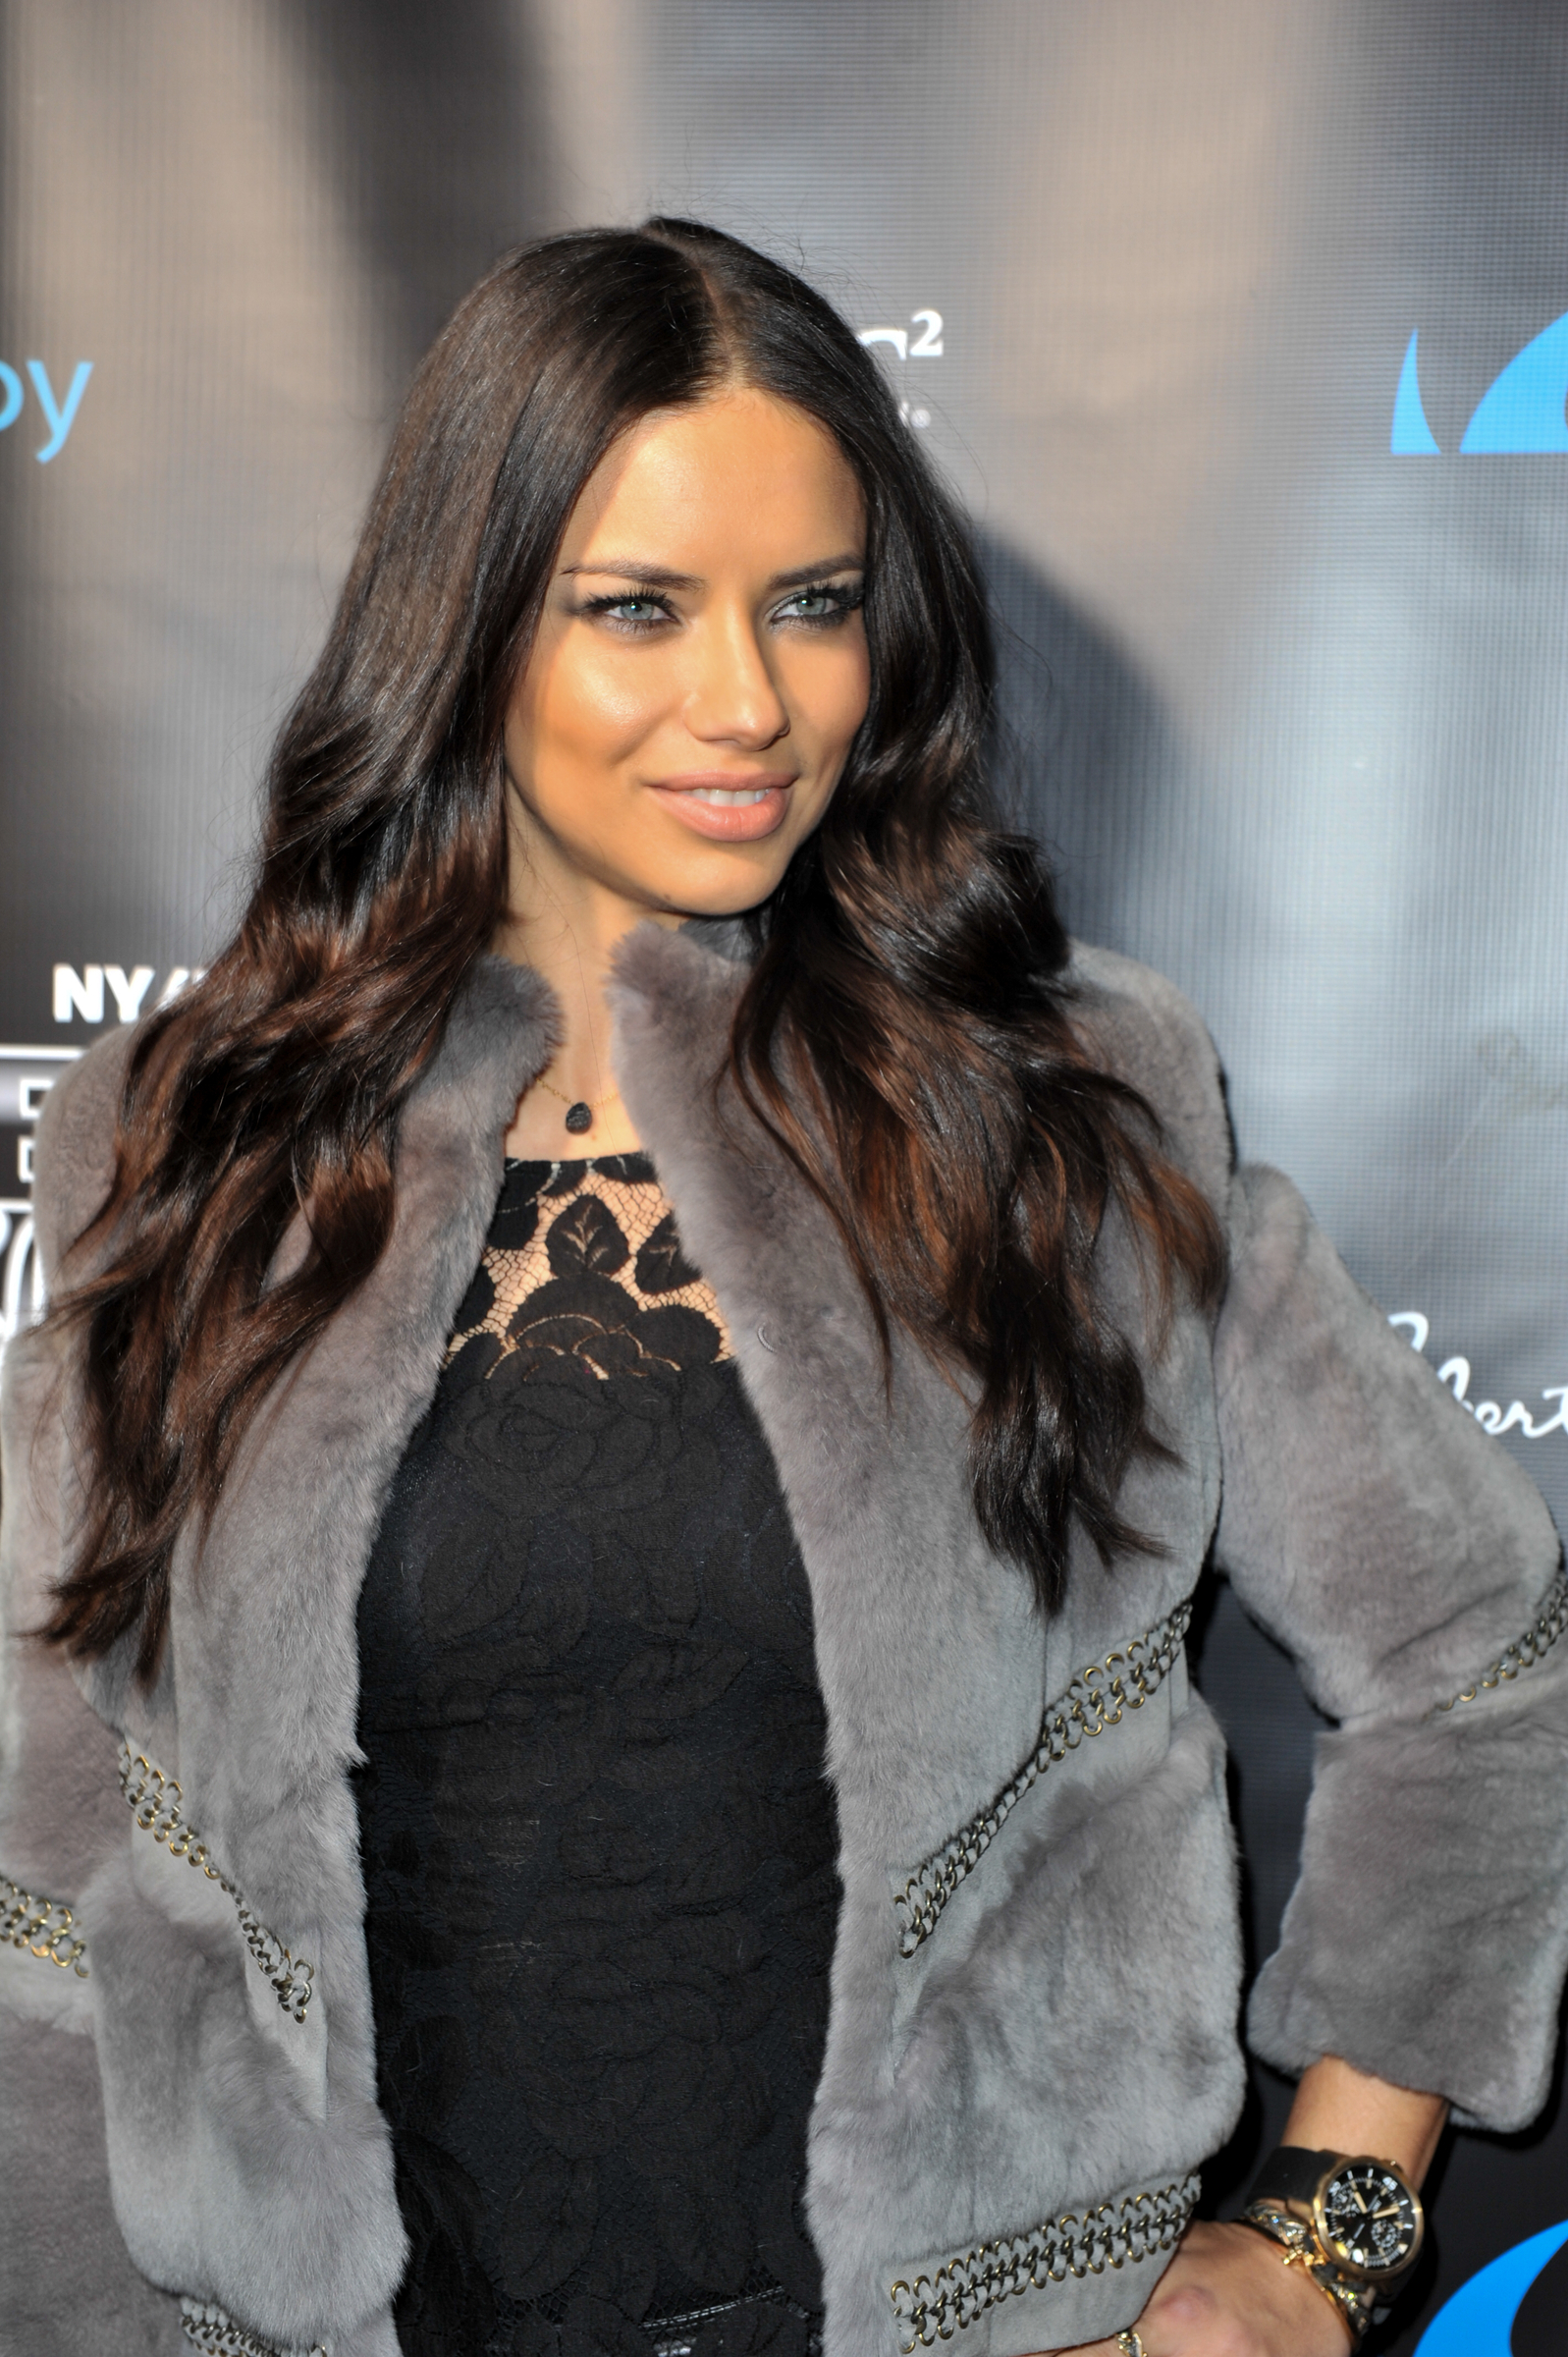 Adriana lima hairstyles 2014 - Super Bowl 2014 After Party 20